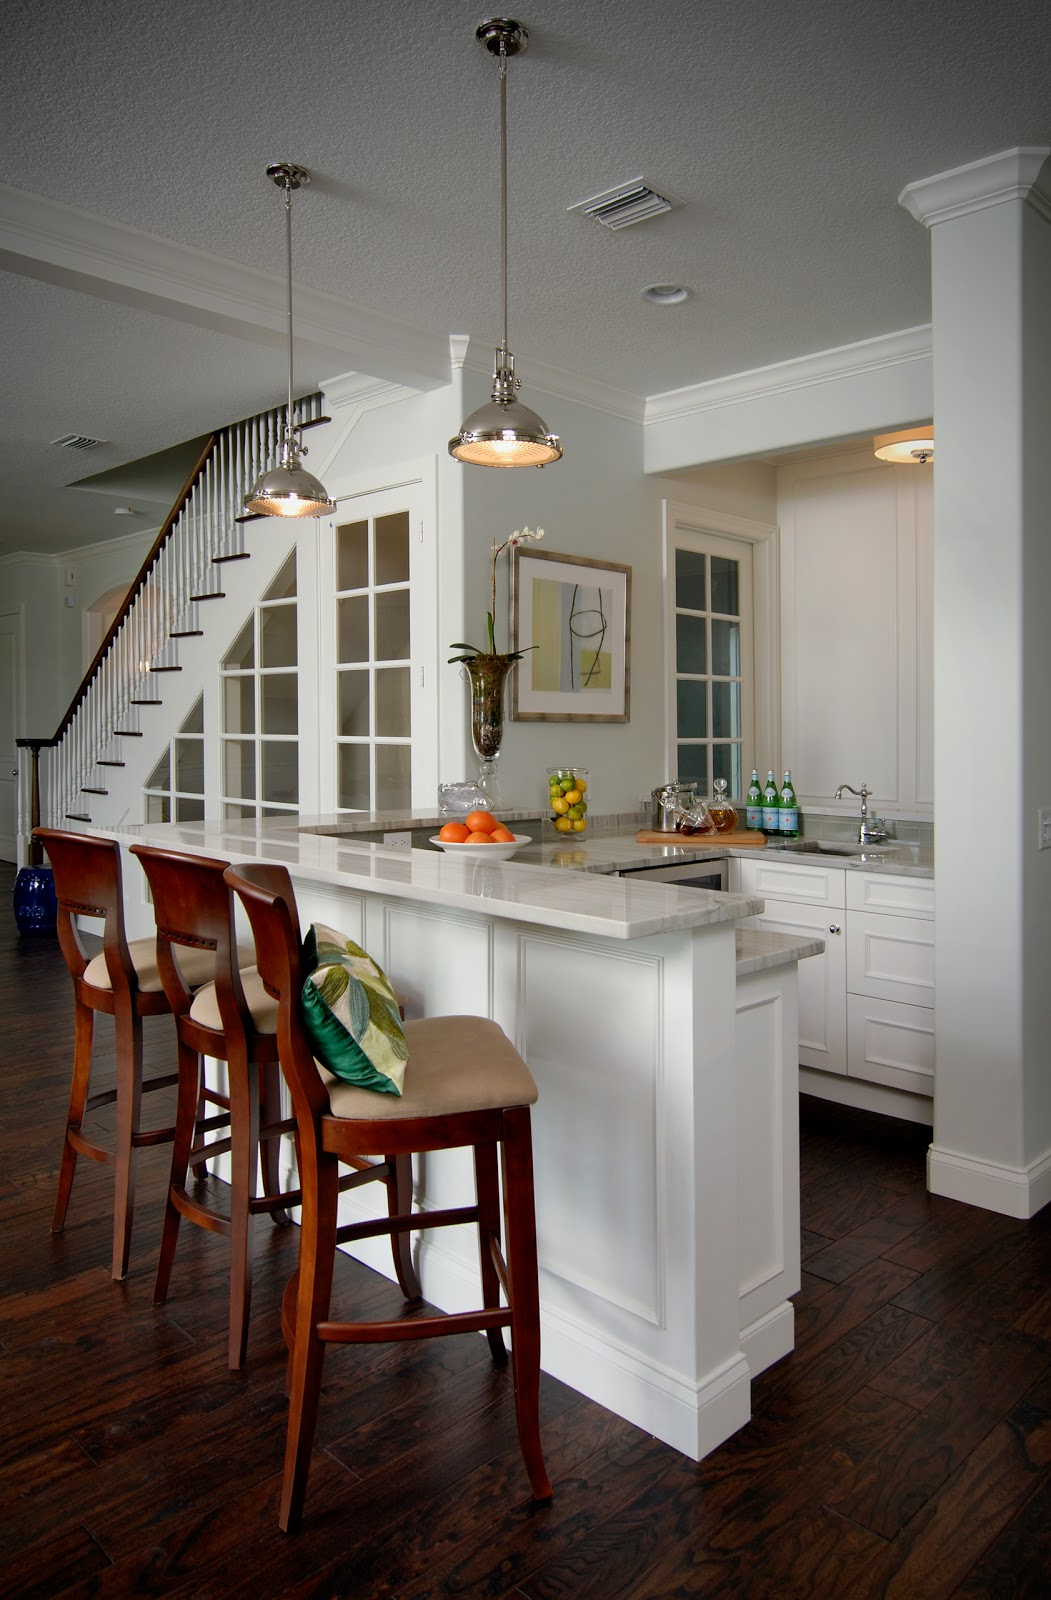 Kitchen Island with Seating and Beverage Cooler